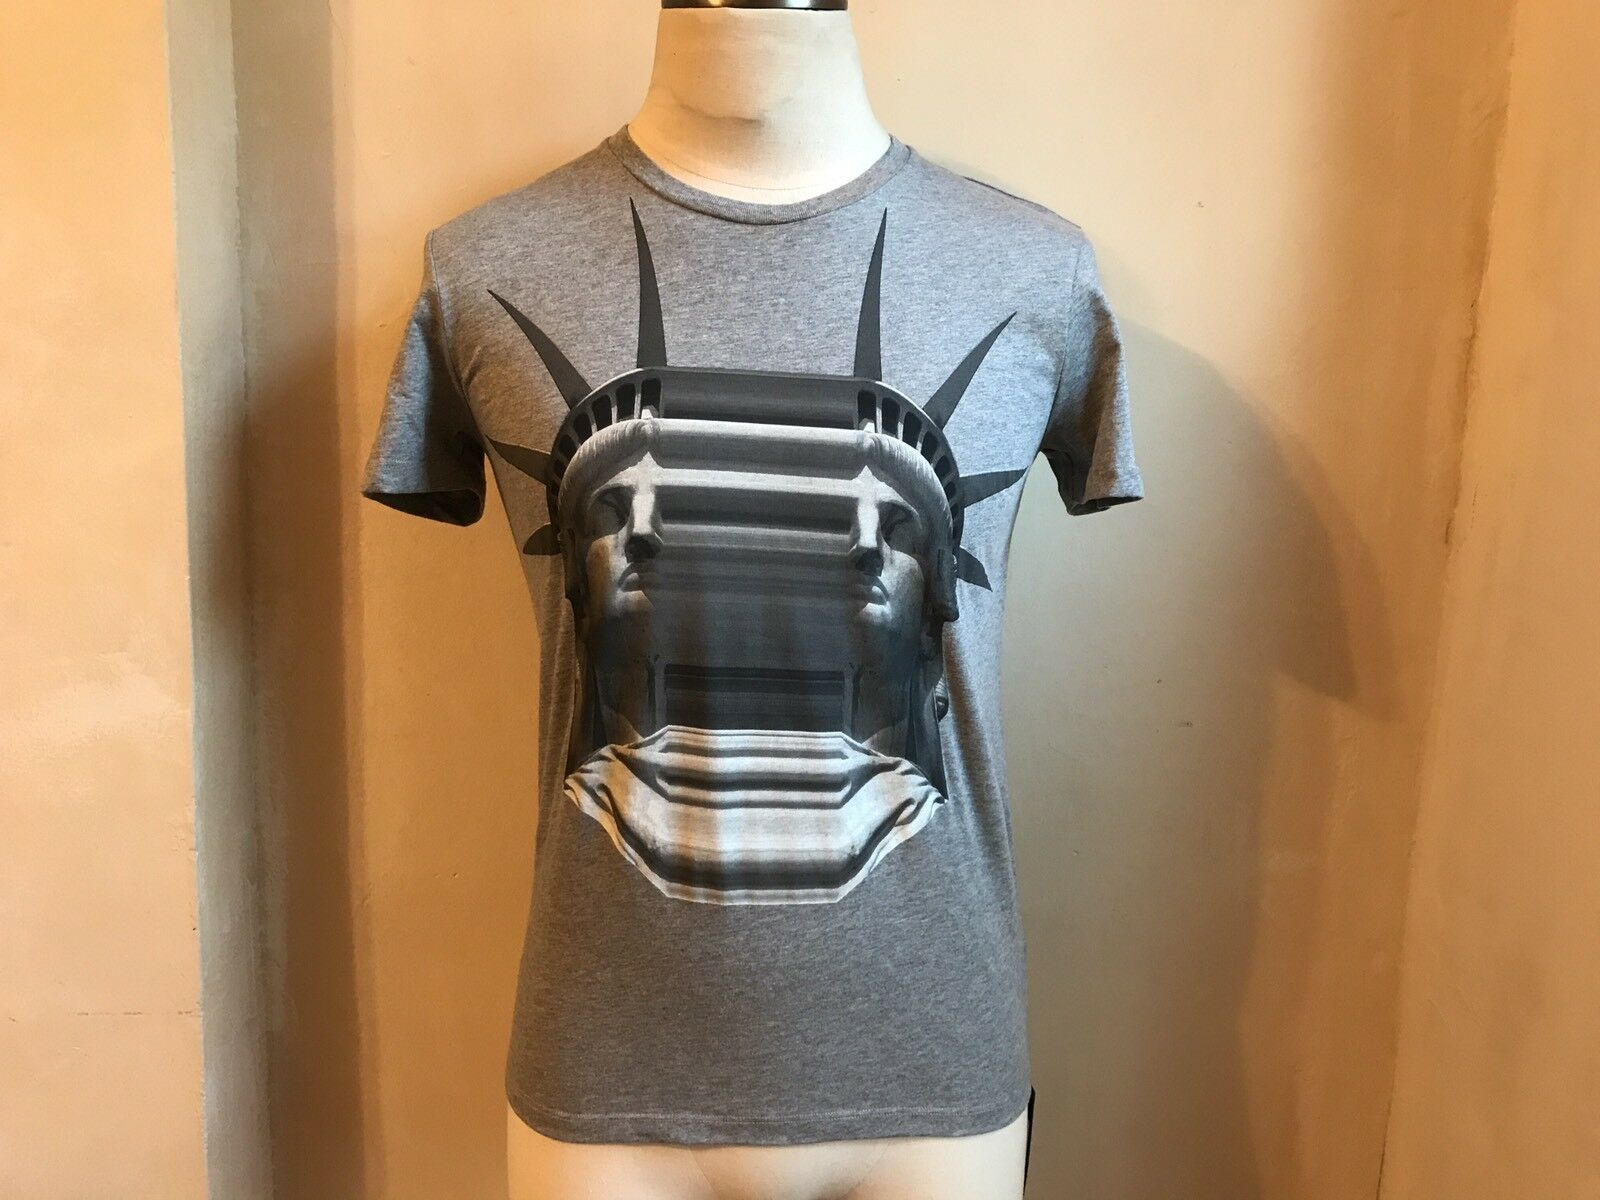 NEIL BARRETT COOL GREY STRETCHED LIBERTY STATUE SERIES N.01 MARBLE T SHIRT S XS